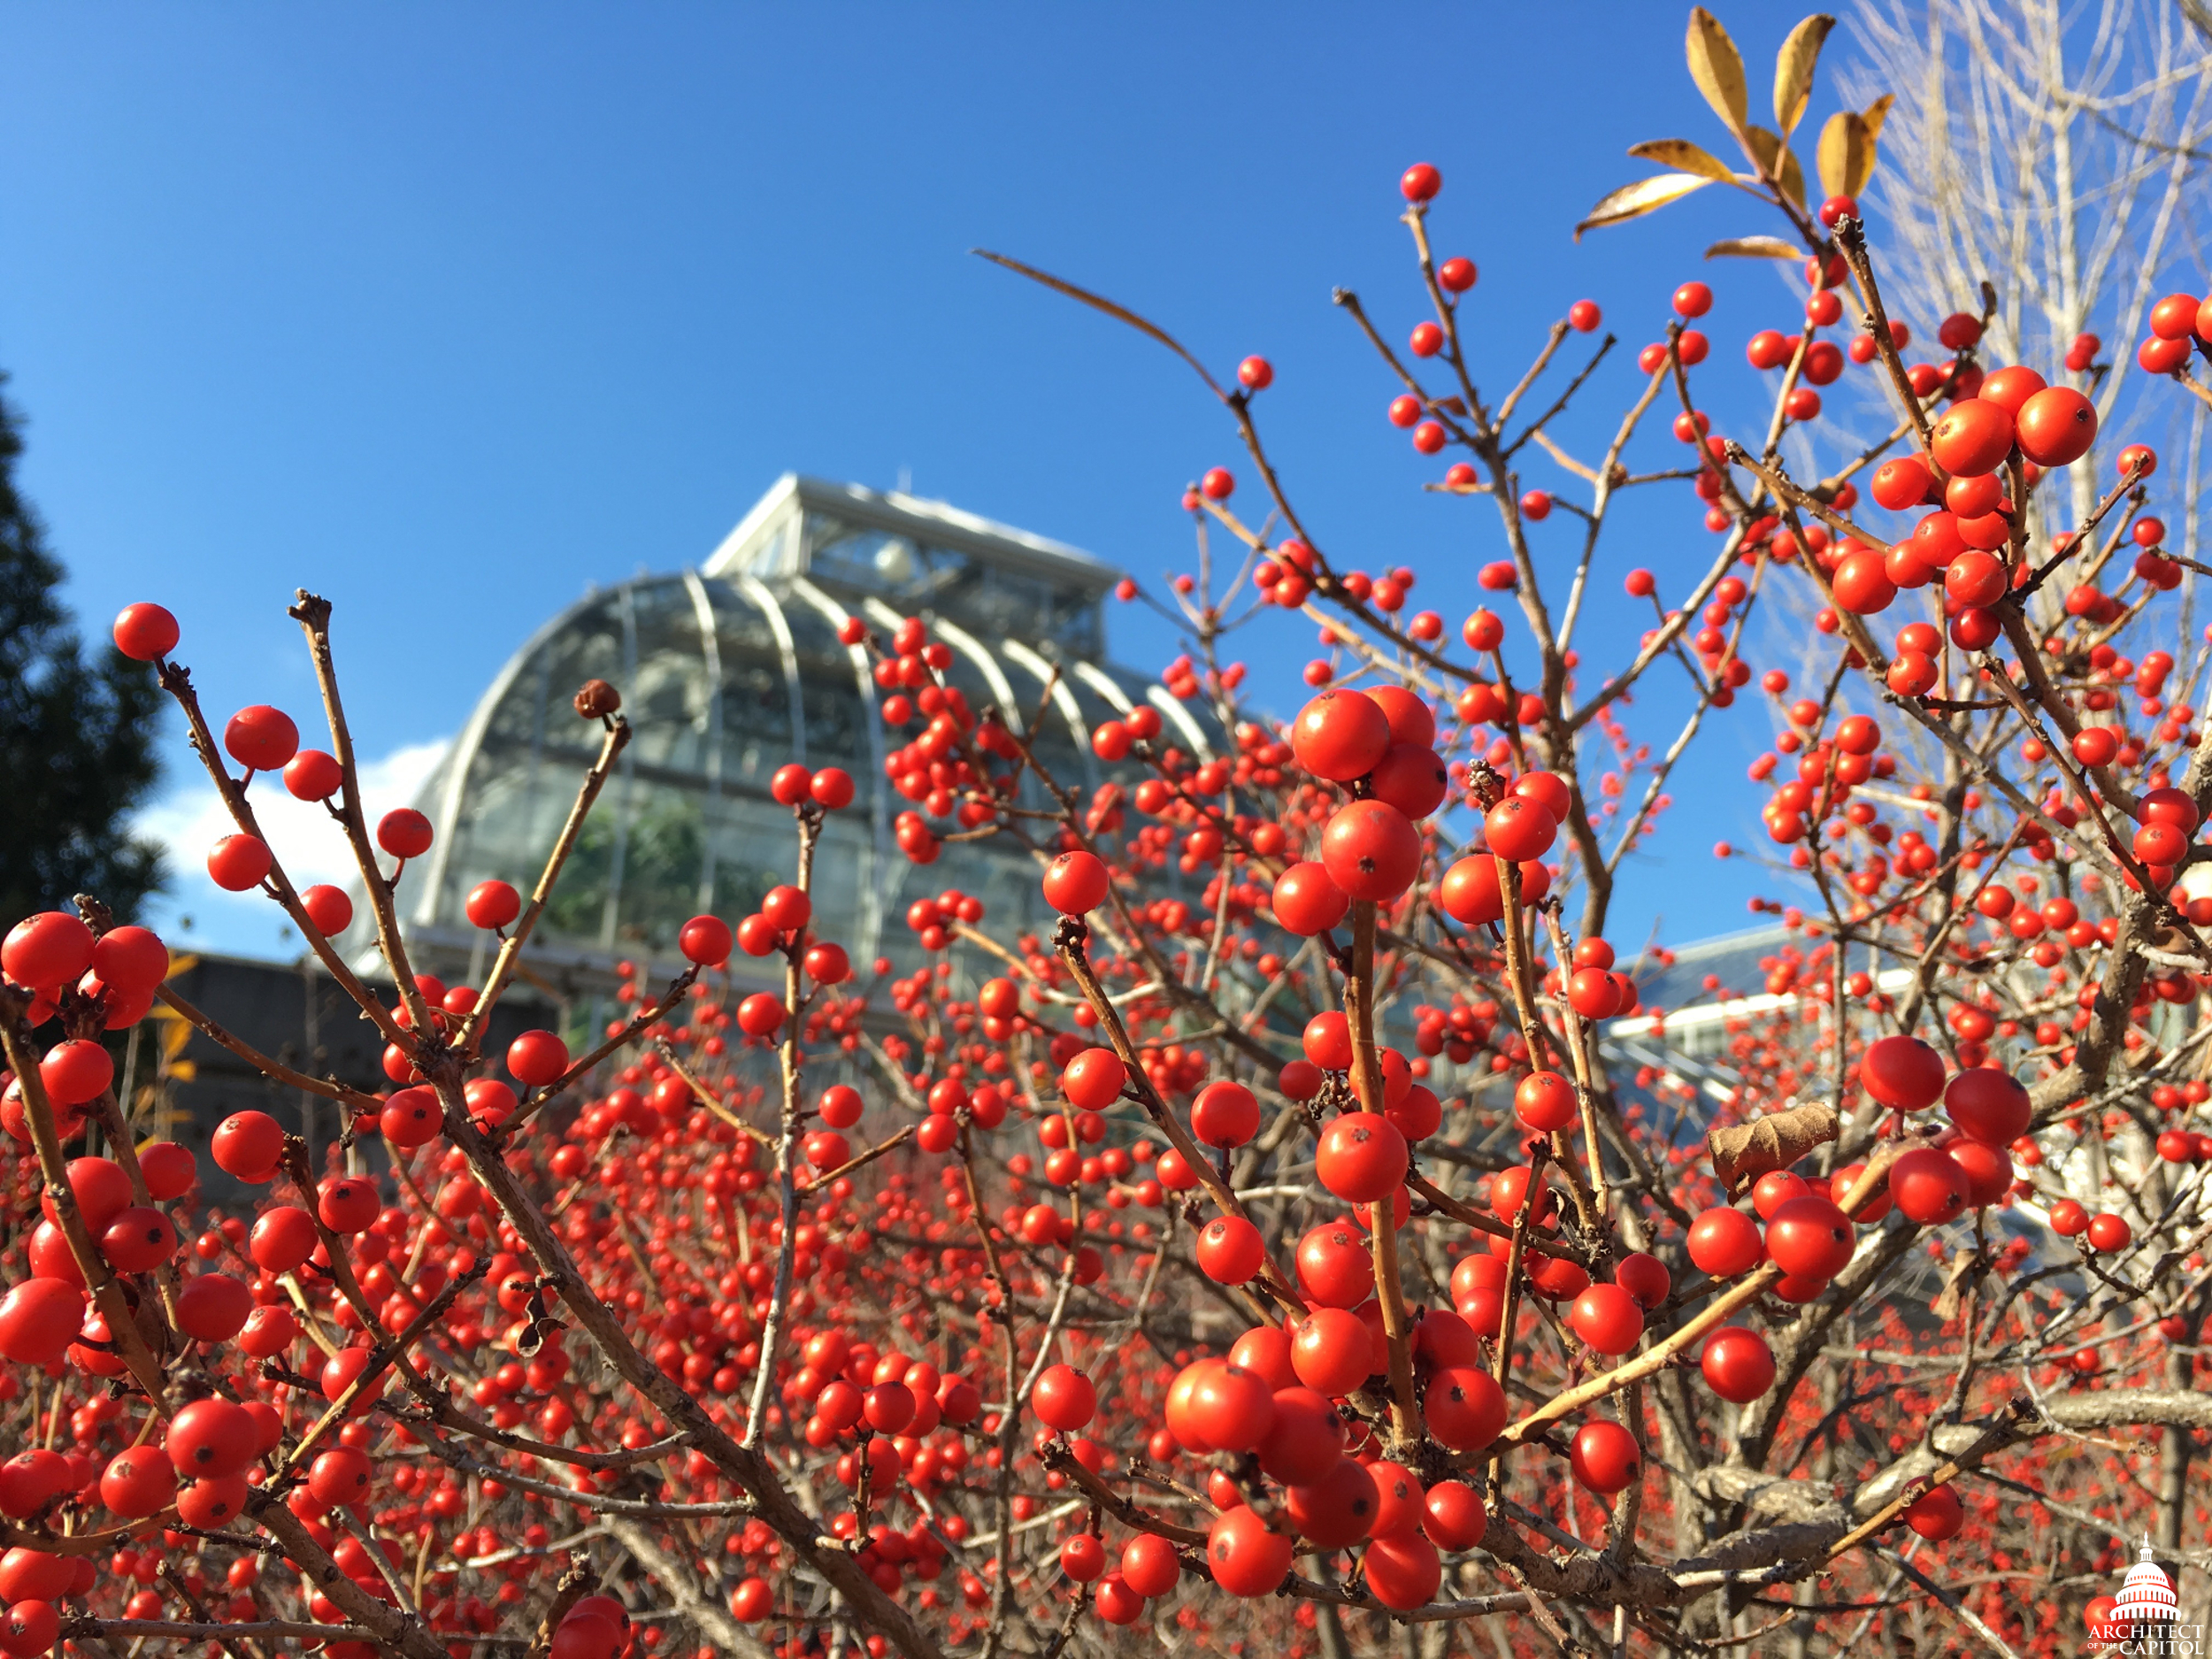 File:Winterberries (Ilex Verticillata)   Winter At United States Botanic  Garden (27549020126